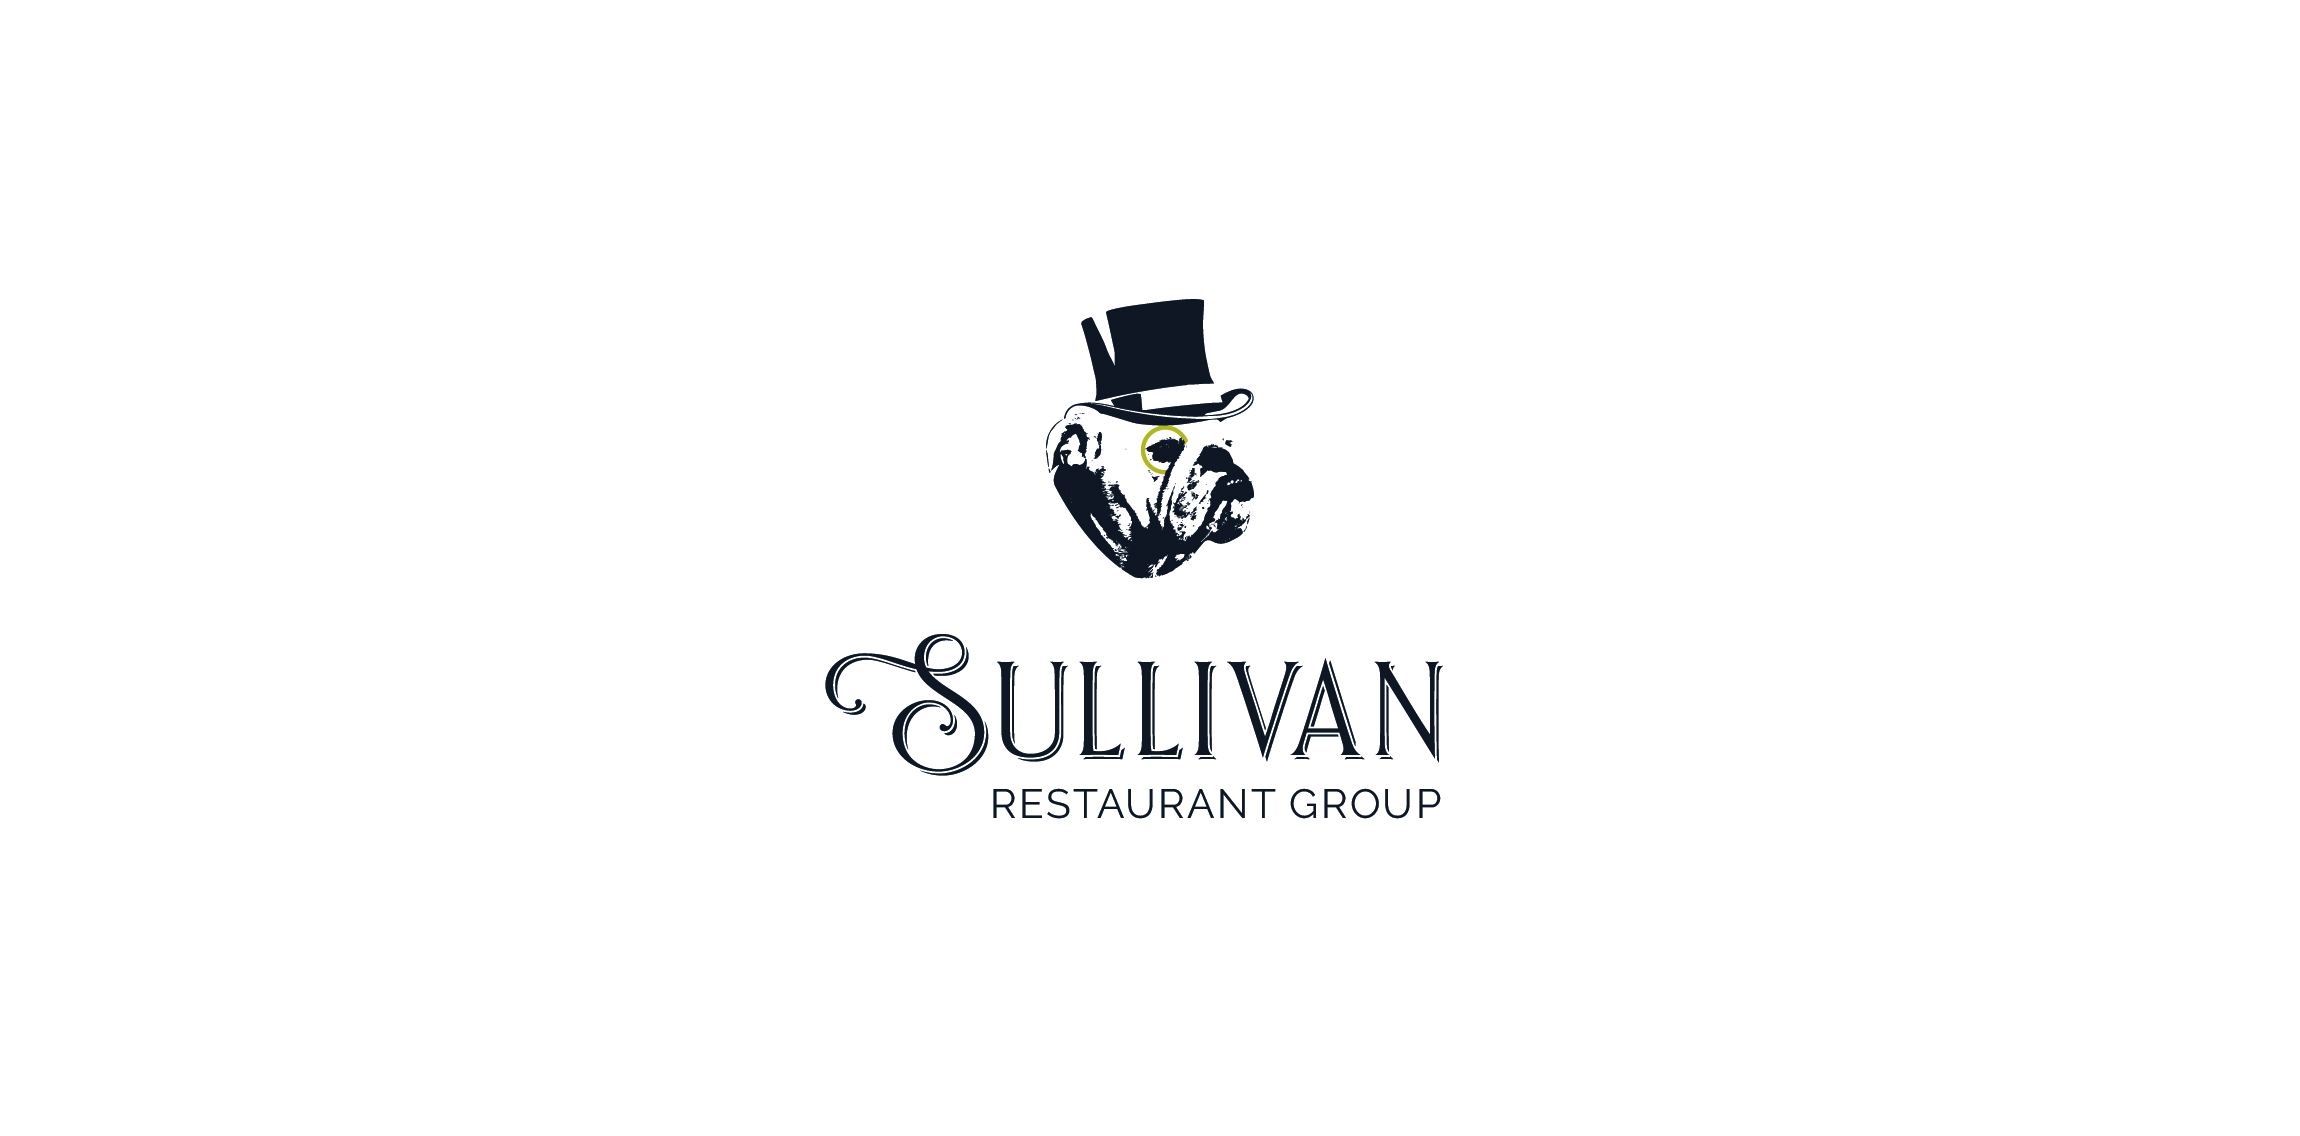 Sullivan Restaurant Group